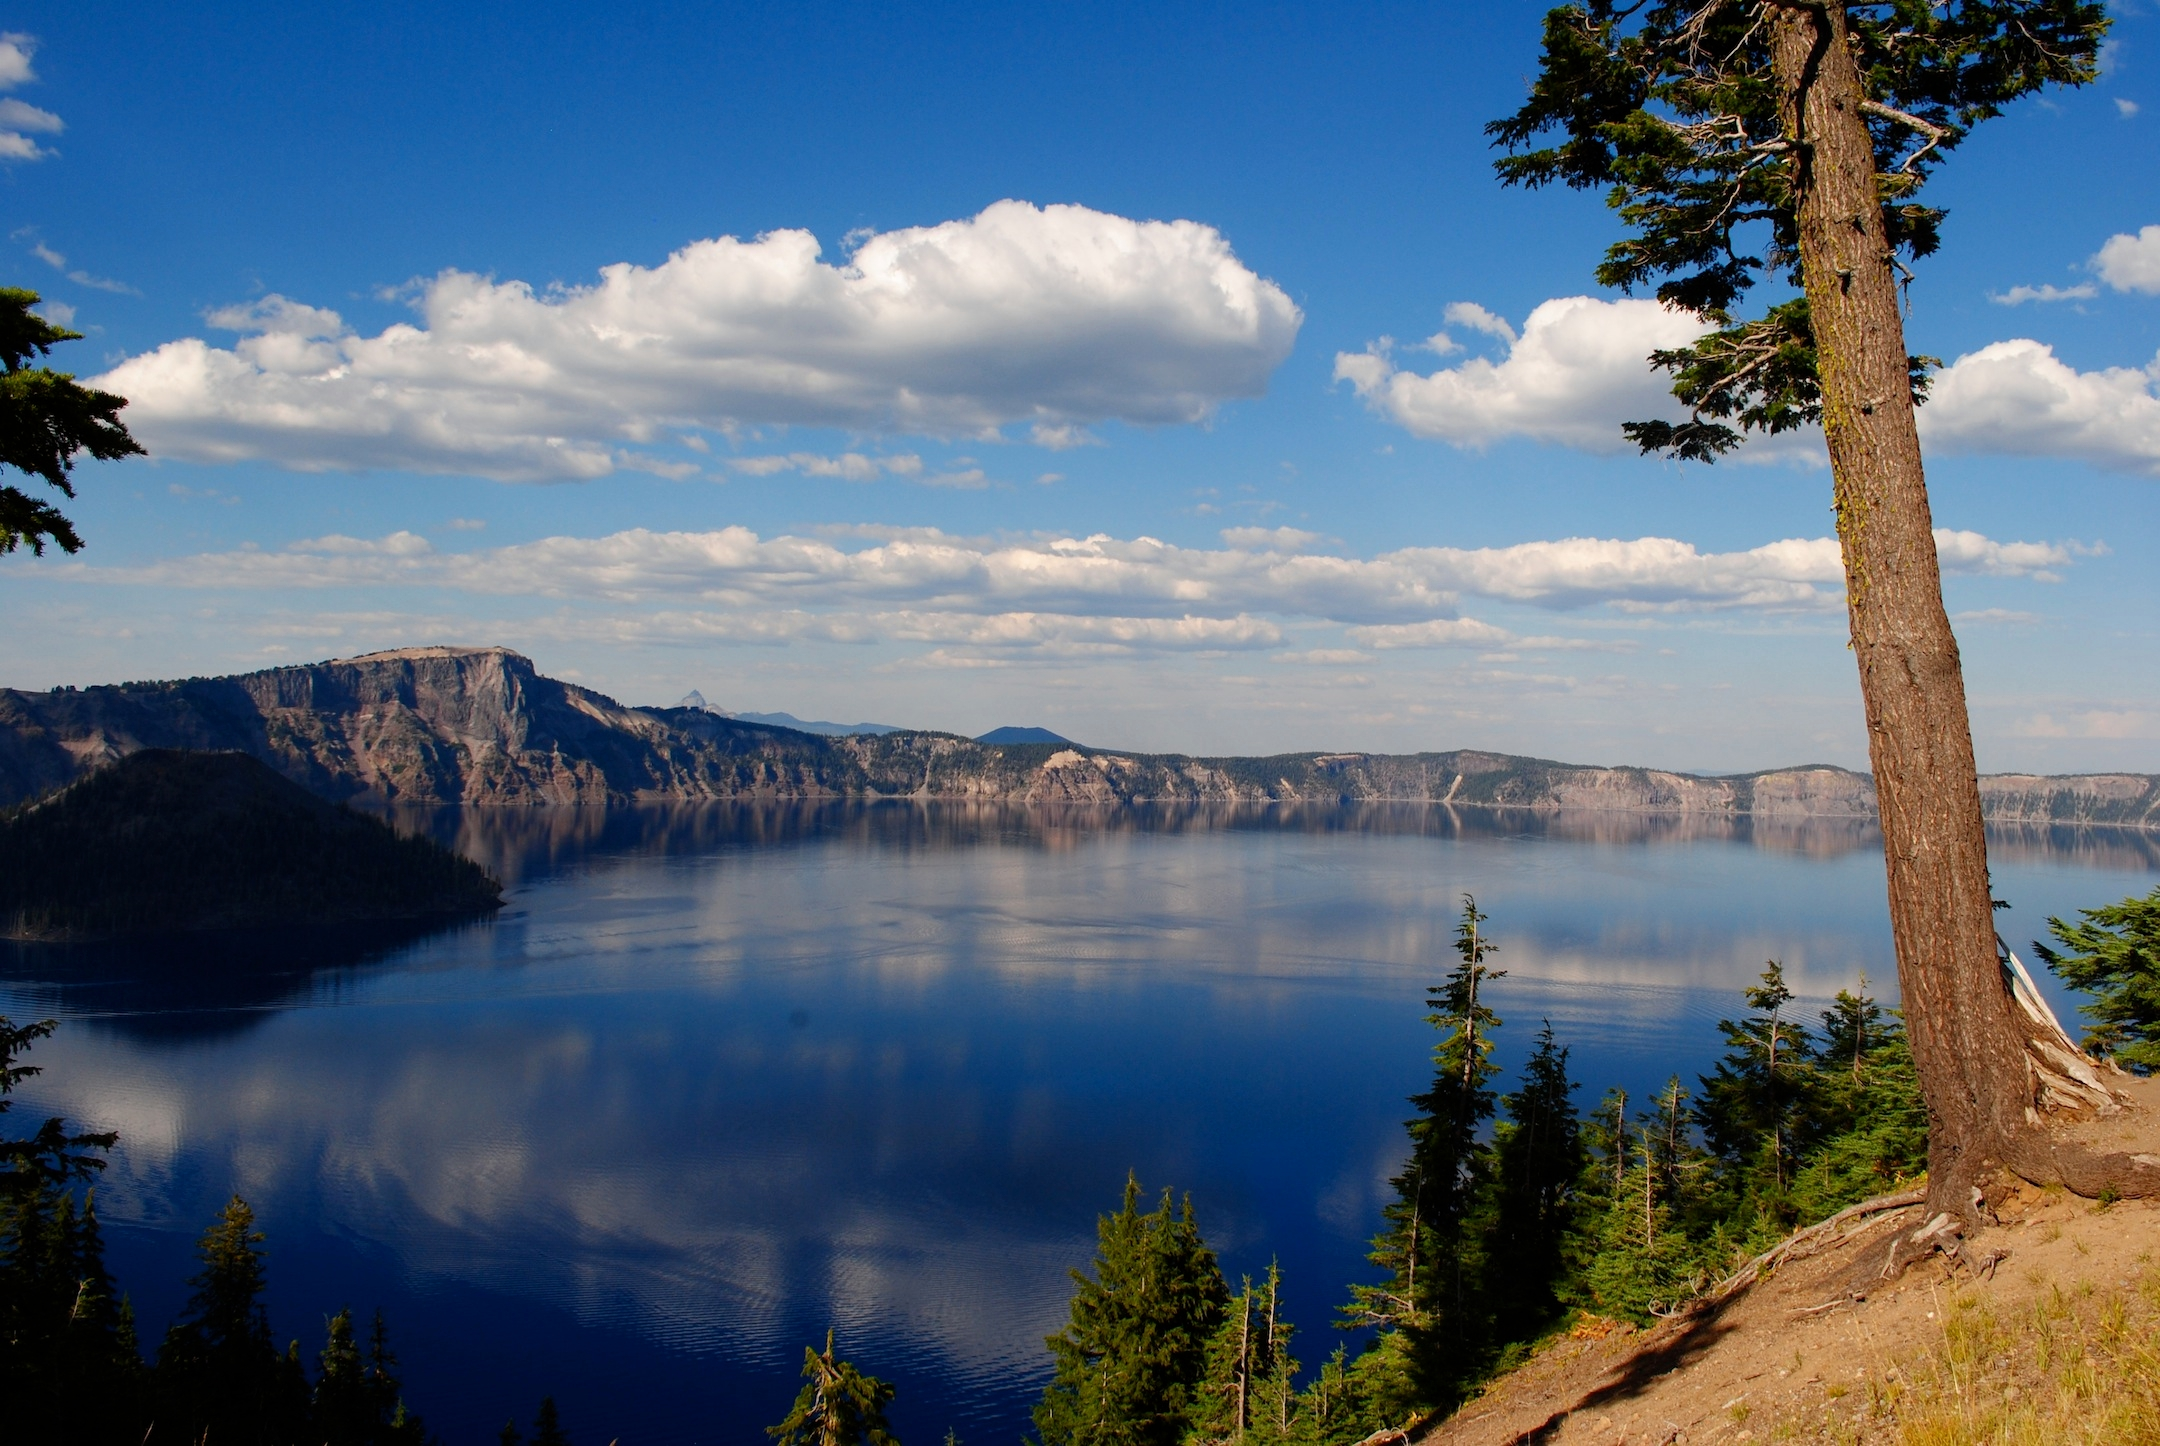 Crater Lake, located a two-hour drive north from Ashland, is famous for its crystal clear waters. (Rebecca Spence)